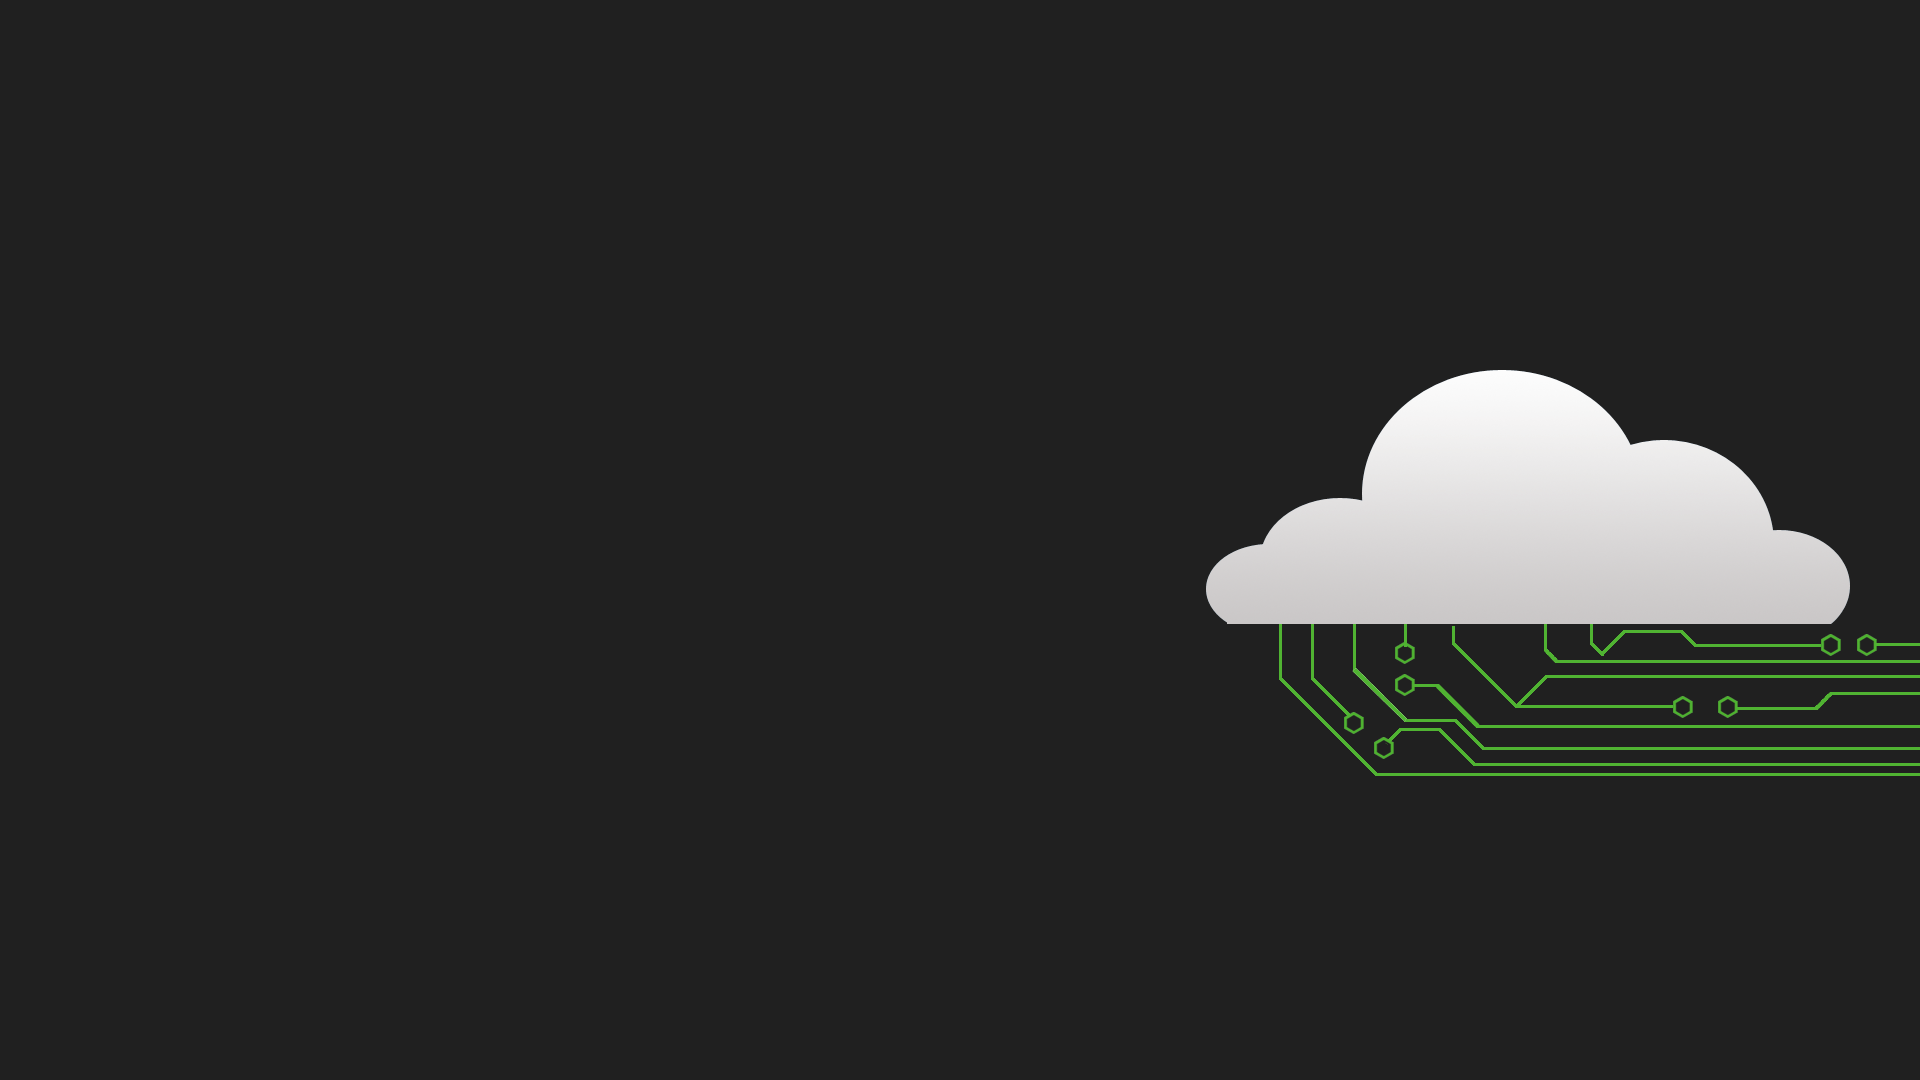 Mobile Wallpapers Hd Animated Minimalism Technology Cloud Hd Artist 4k Wallpapers